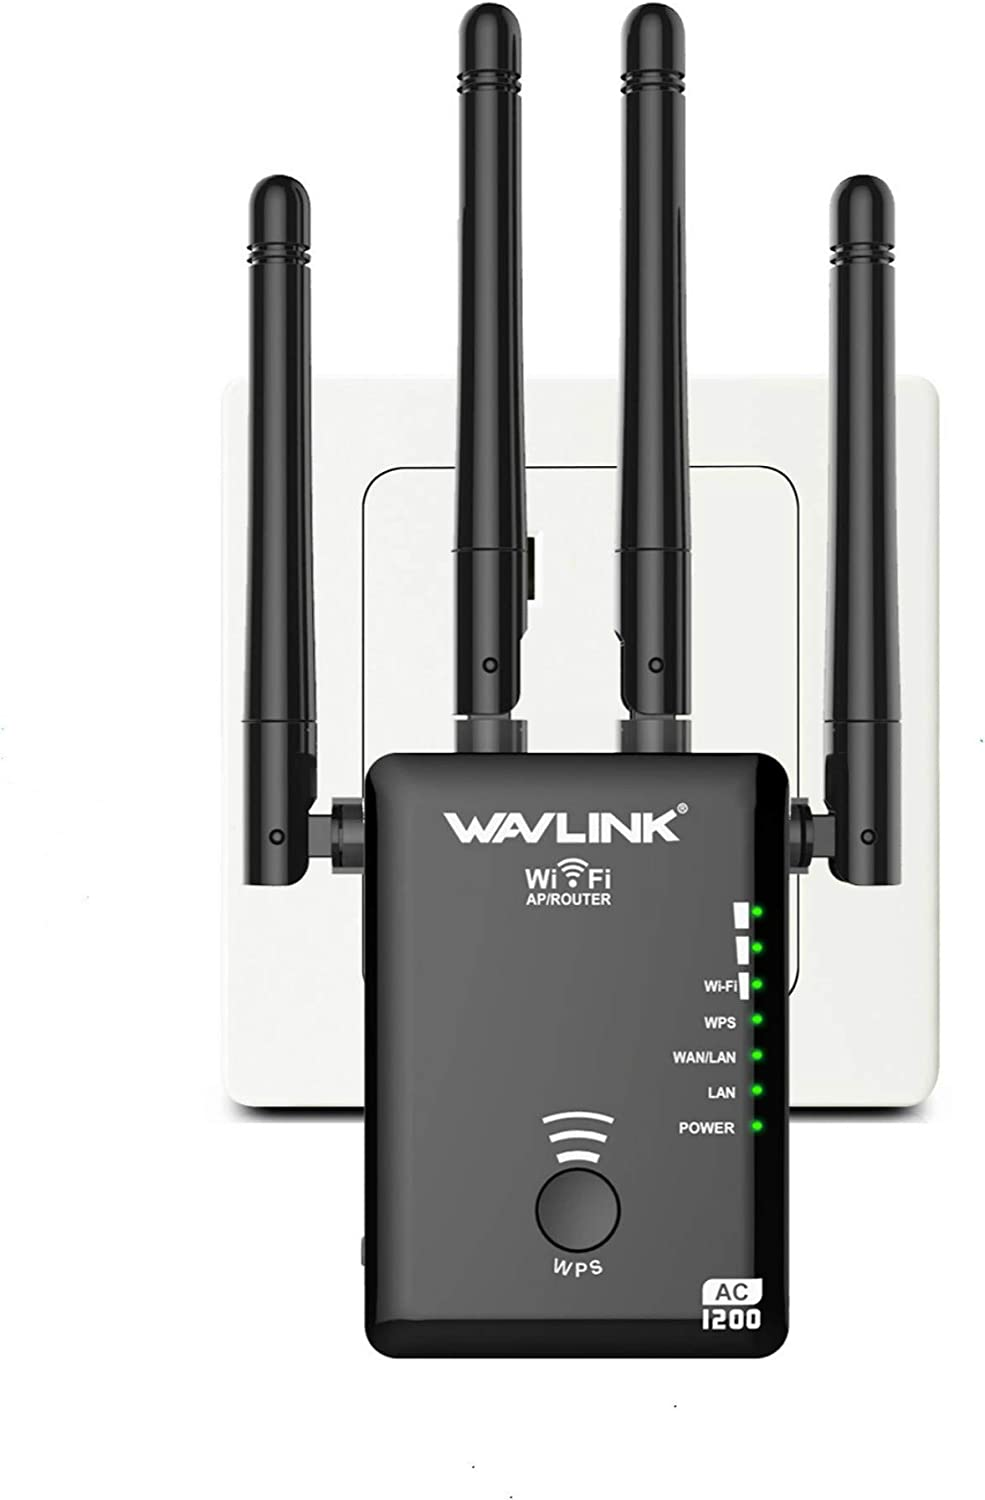 WiFi Signal Boosters Wireless Router Extender for 10 Devices 2 External Antennas Plug and Play 1200Mbps WiFi Range Extender 300Mbps 2.4GHz Wifi Extender Wifi Booster Wireless